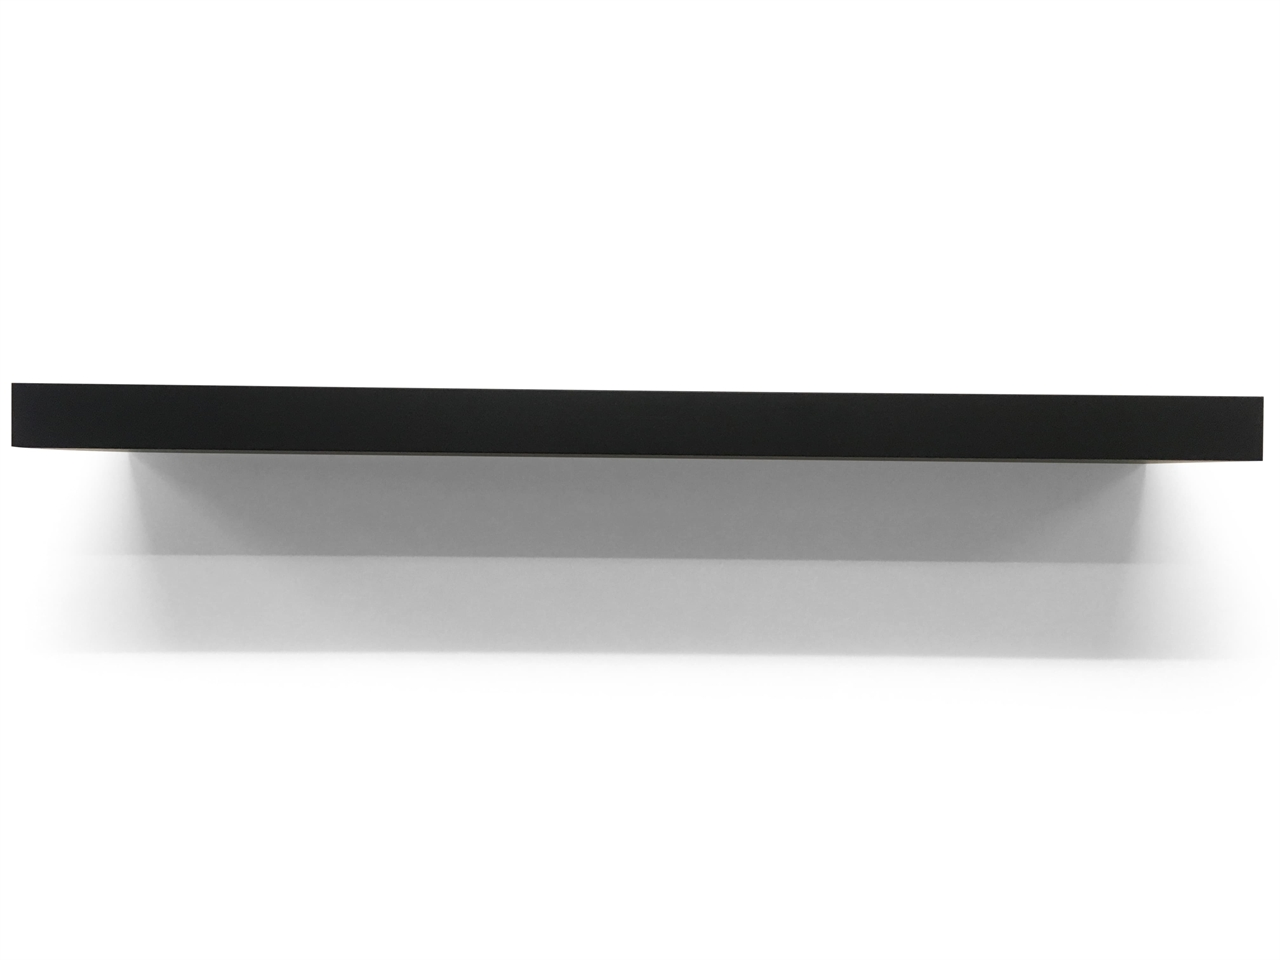 top shelf gallery floating shelves high gloss white chunky matt black laminated thick deep long hardware glass support rails heavy duty pins ikea storage unit expedit boxes